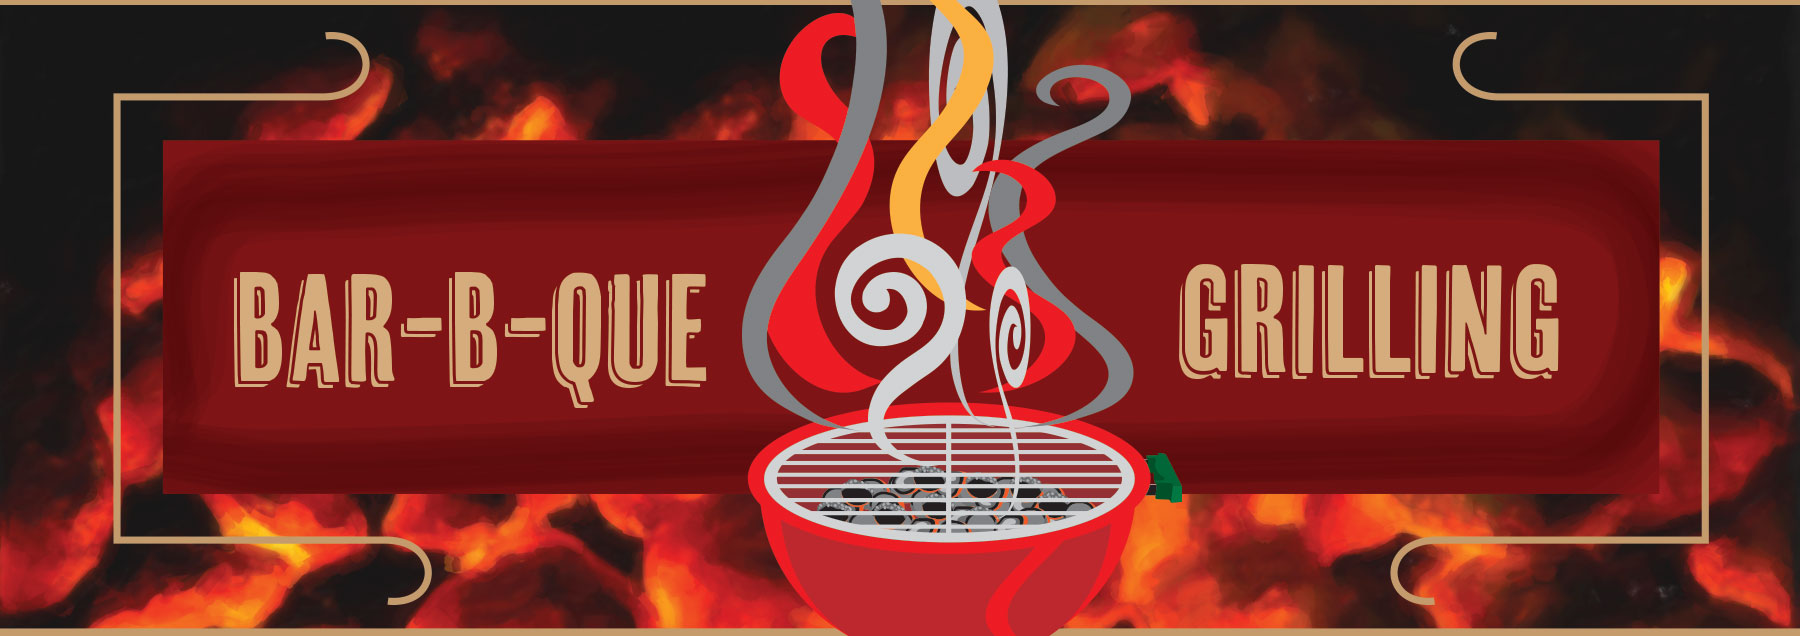 bbq-grilling-banner